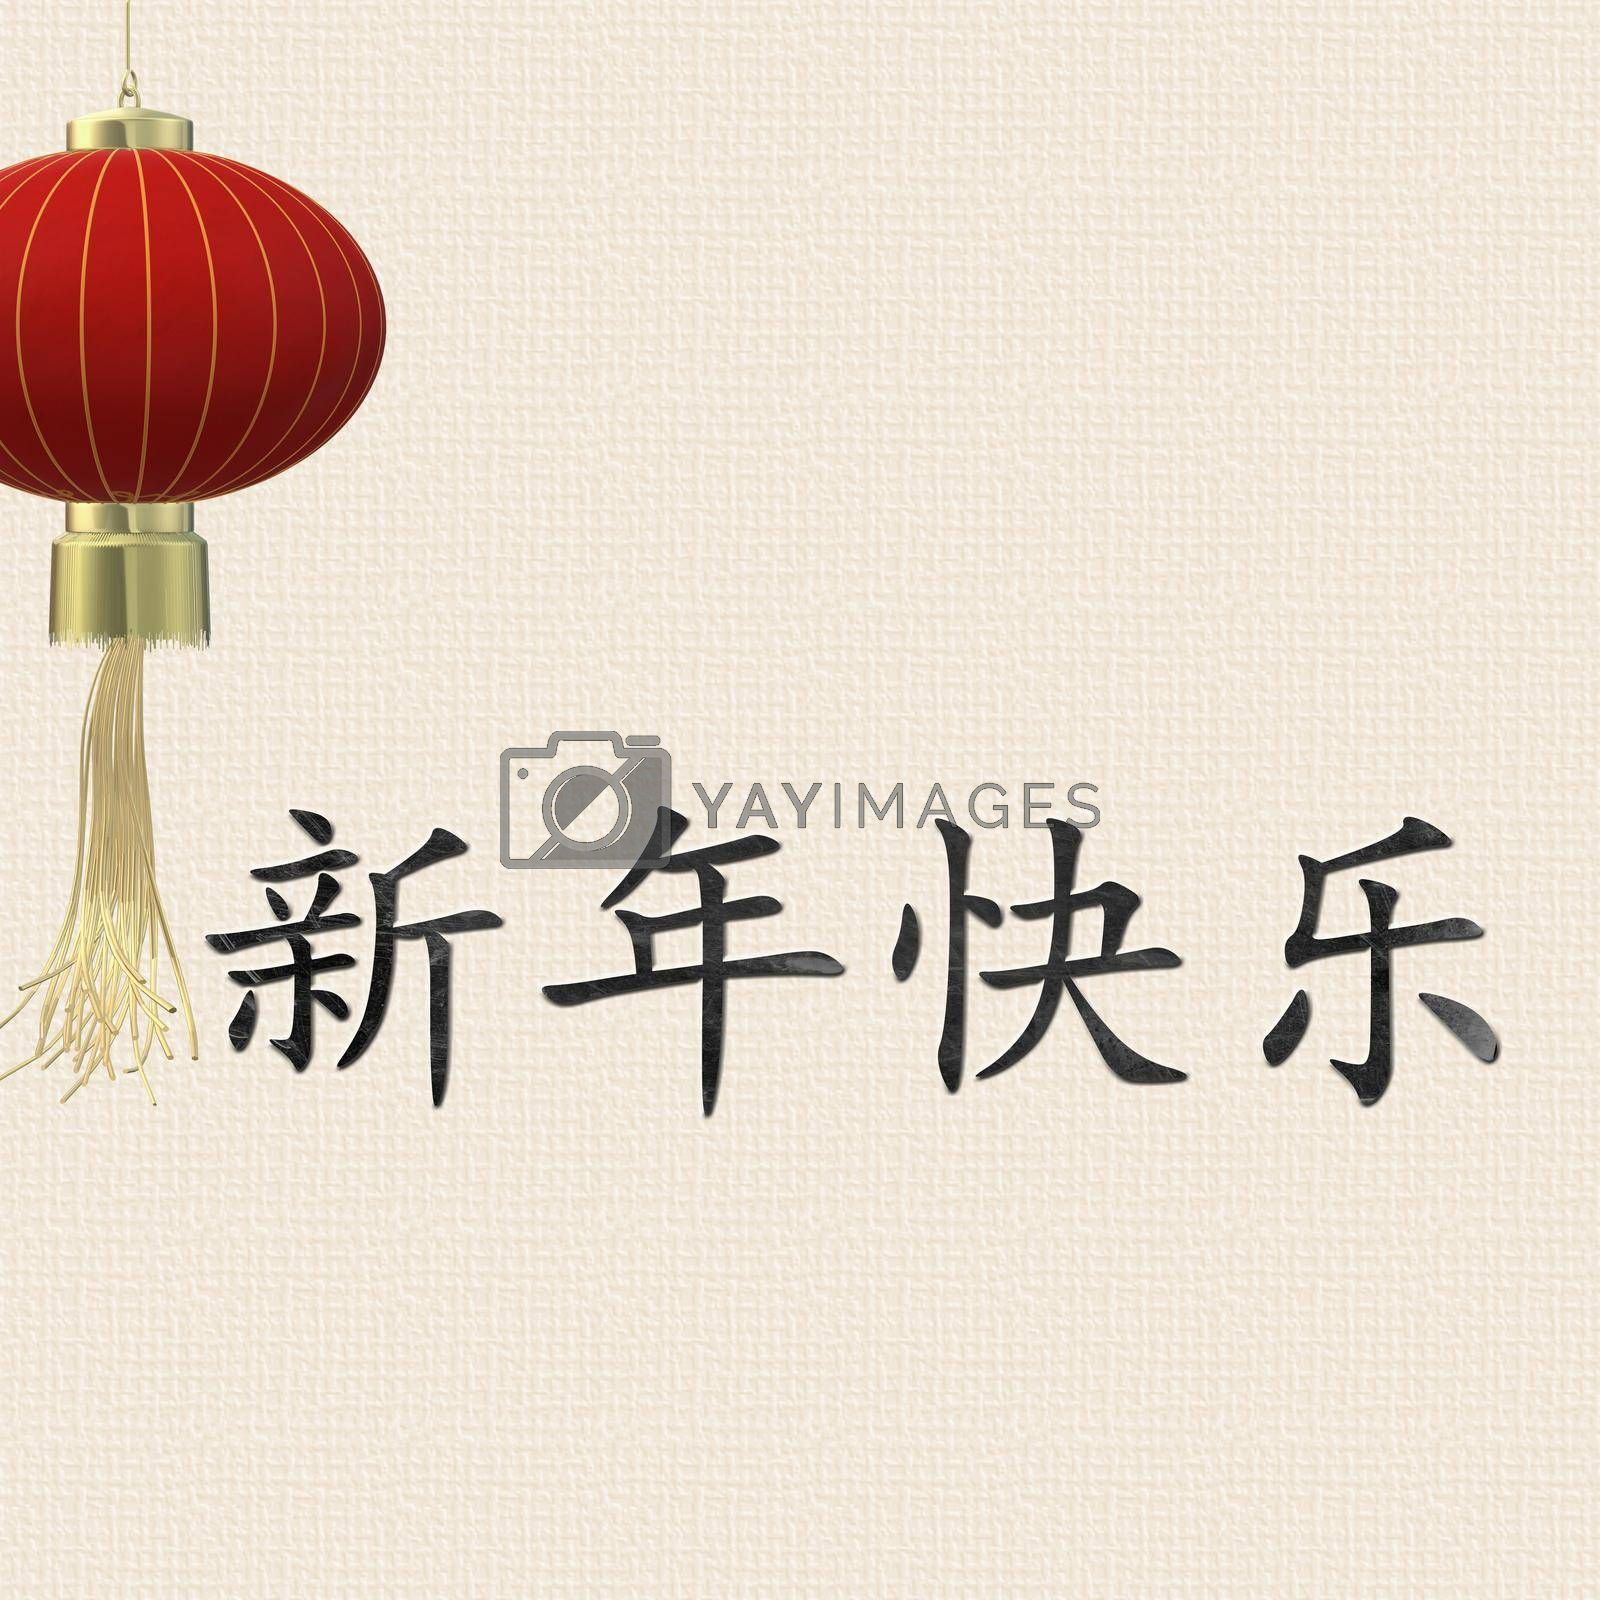 Happy New Year card. Happy Chinese new year golden text in Chinese, red lantern on pastel yellow background. Design for greetings, invitation, posters, brochure, calendar, flyers, banners. 3D render